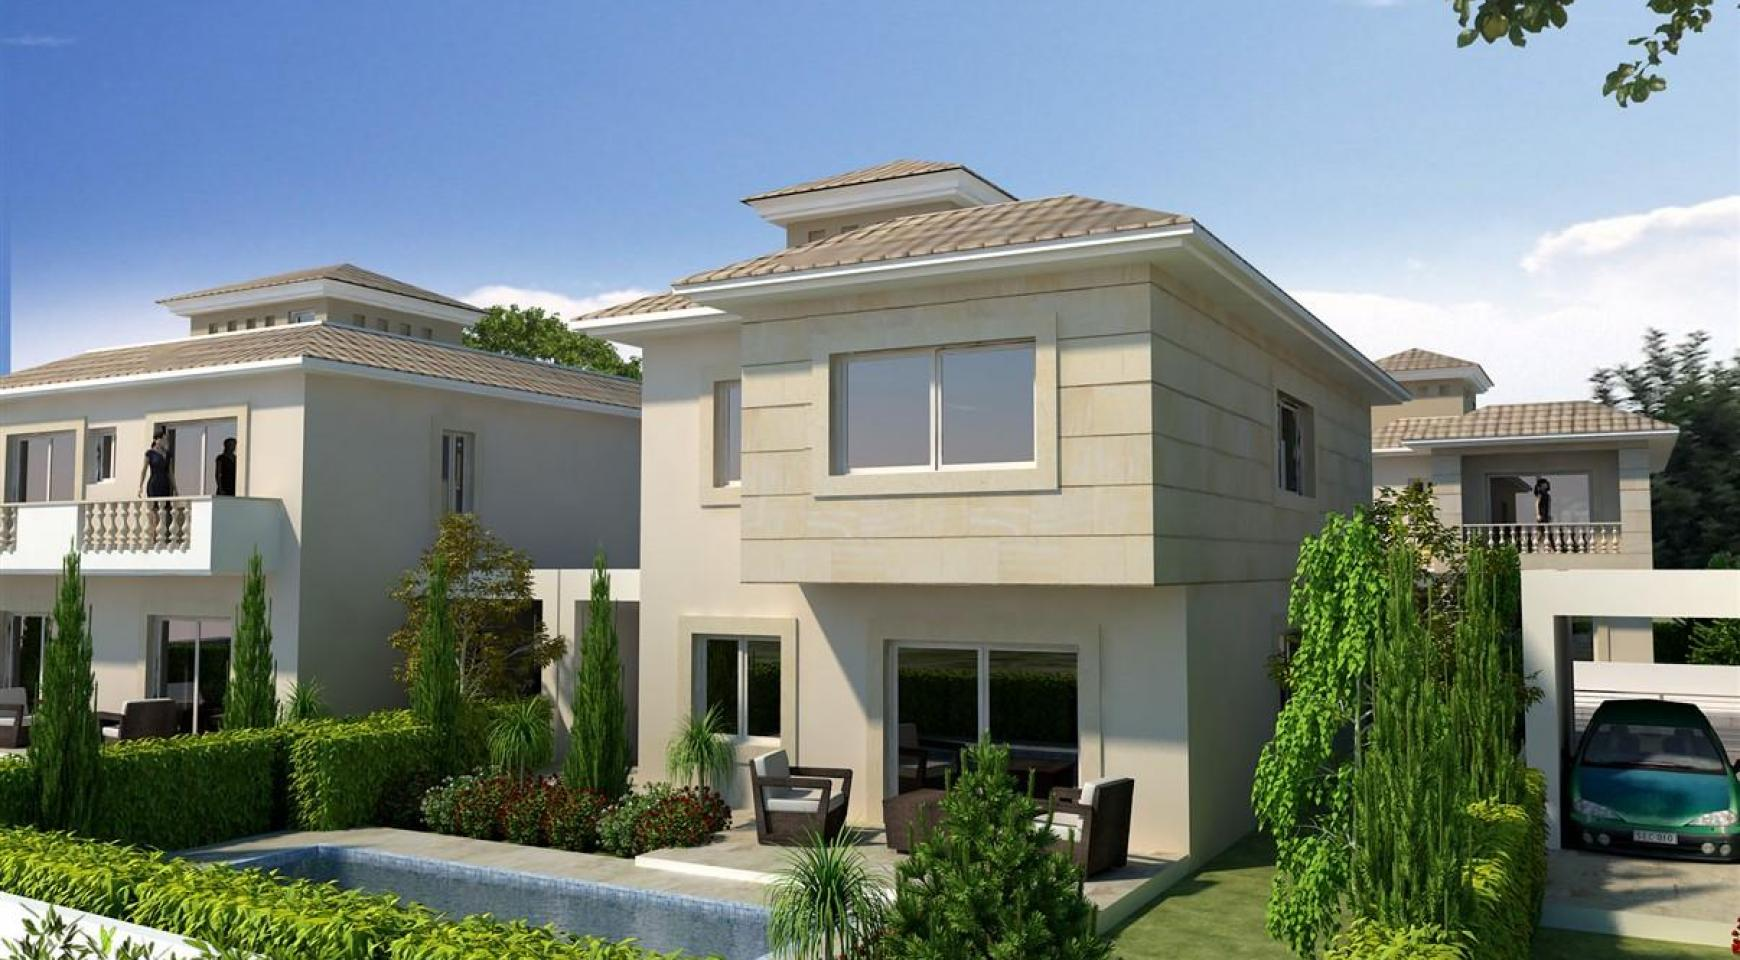 3 Bedroom Villa in a New Project - 10